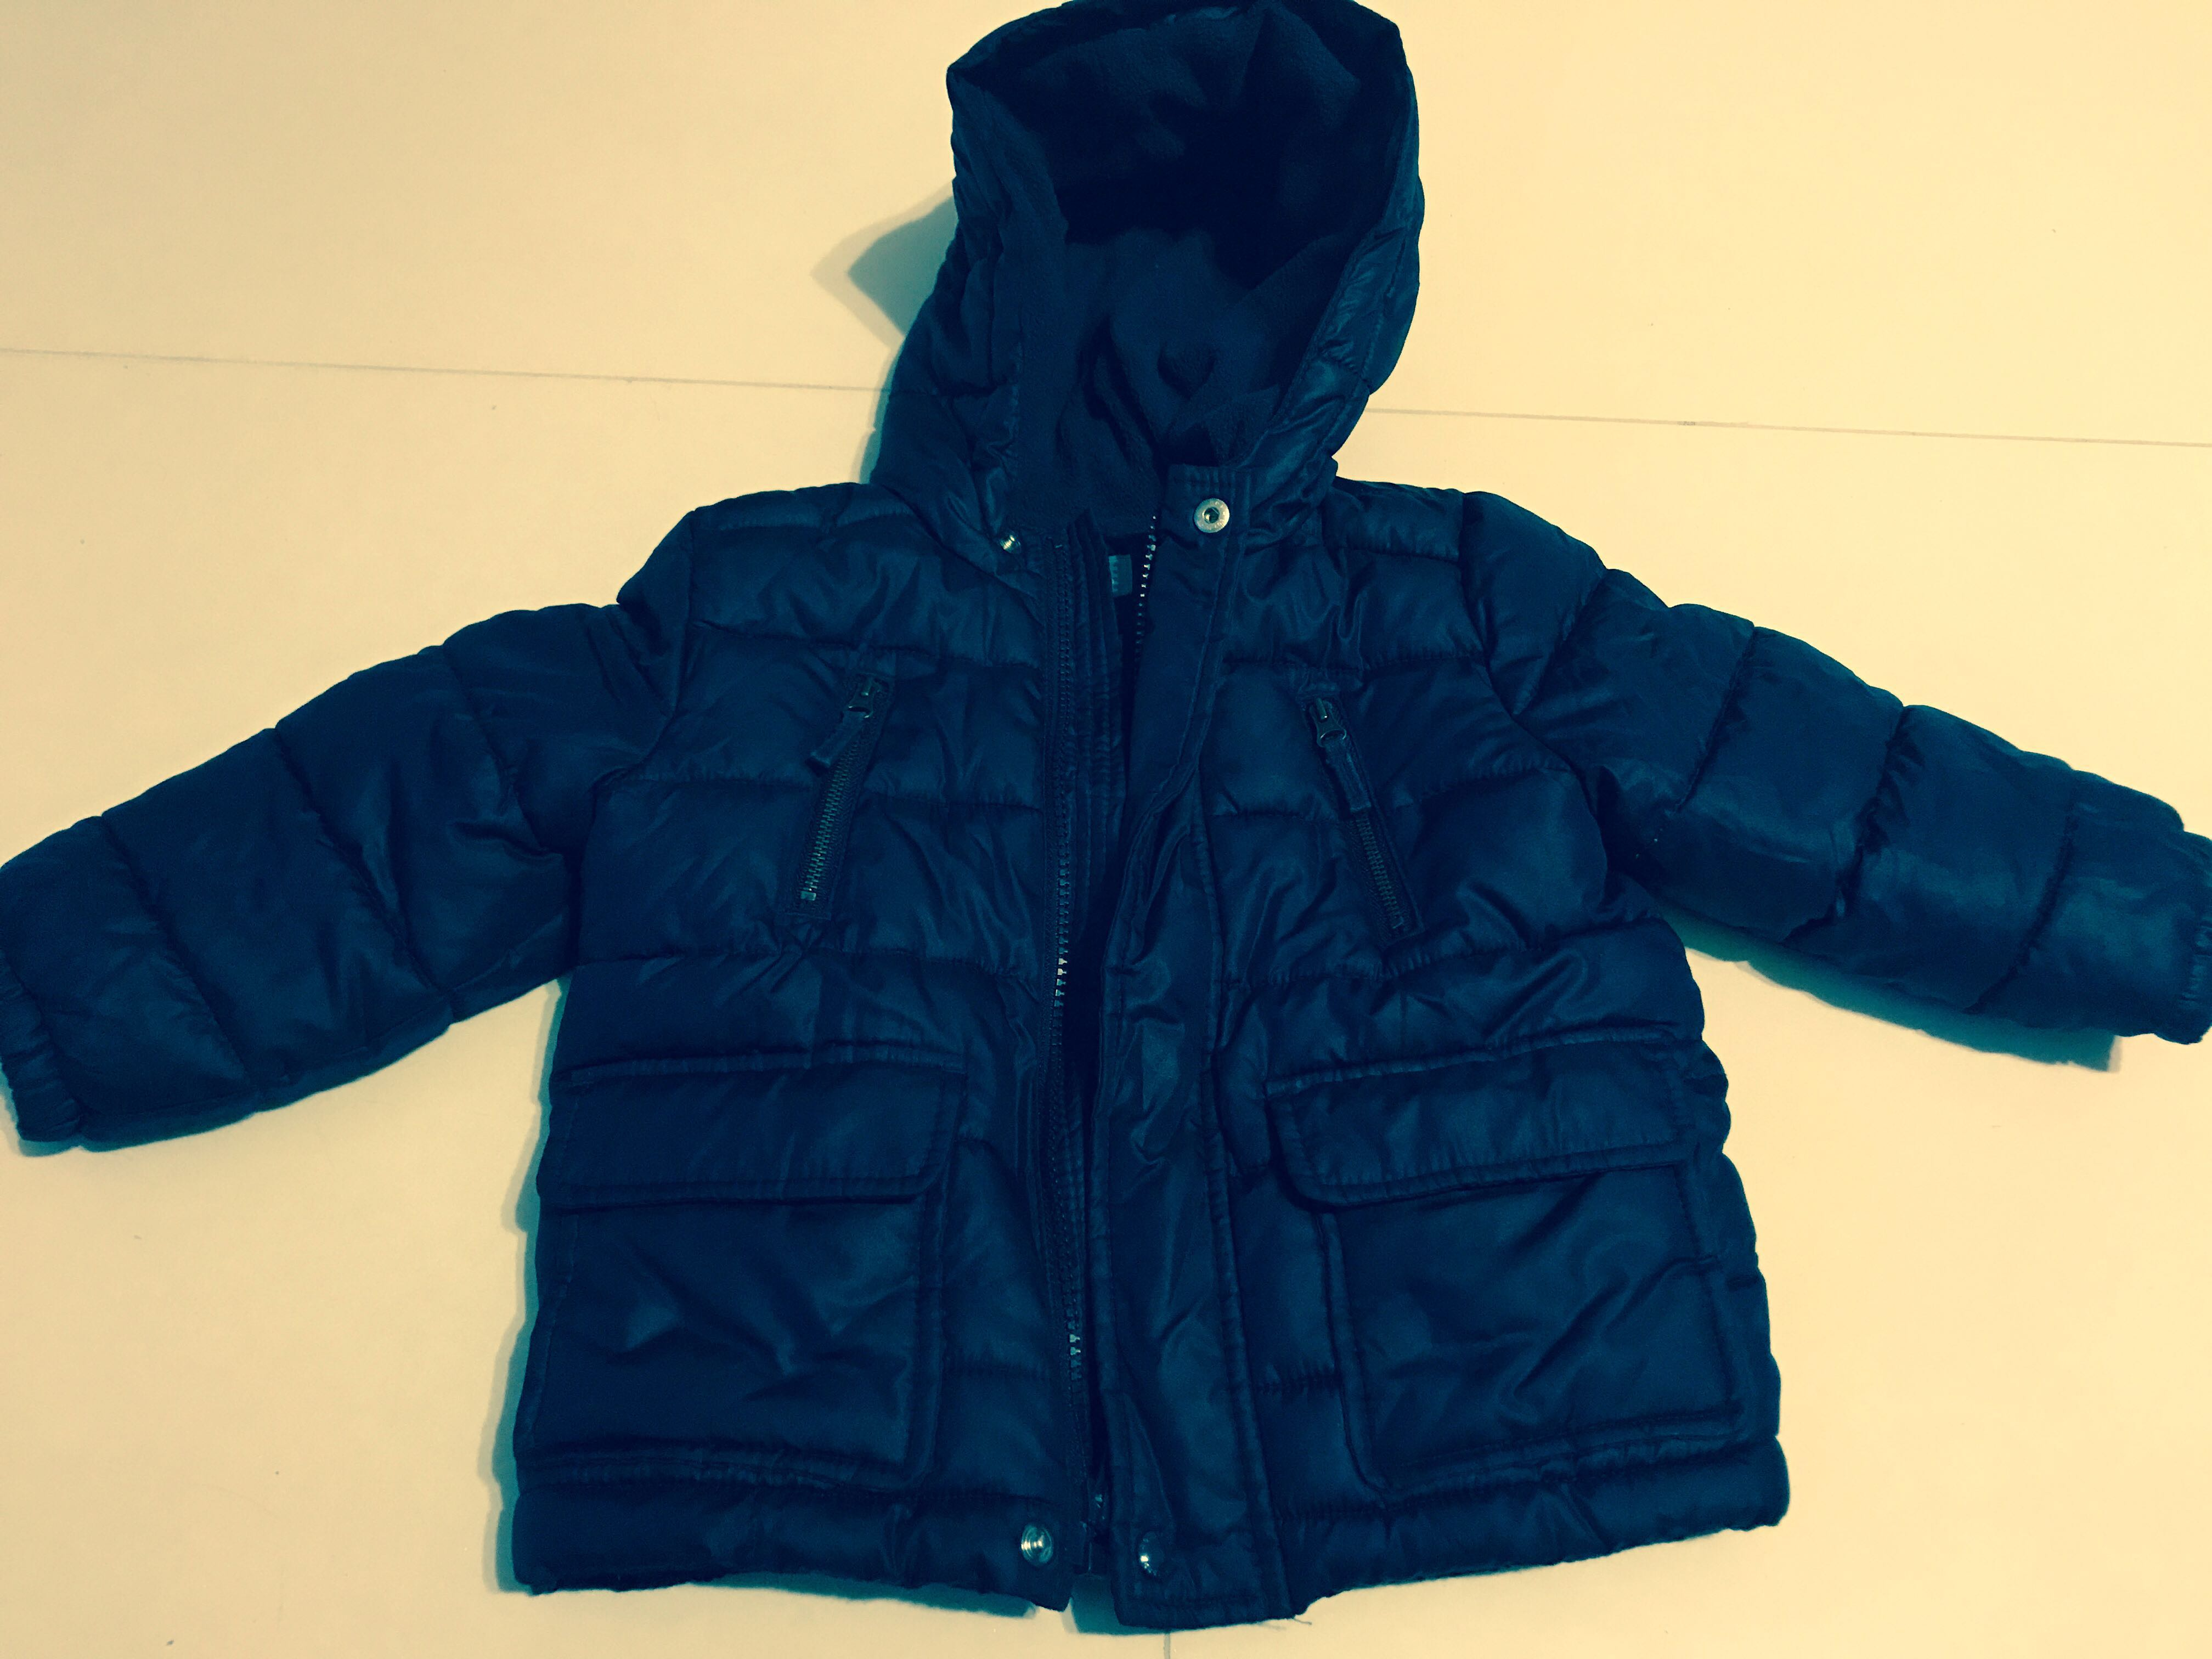 deb7497d3 Navy blue 18 - 24 month winter jacket